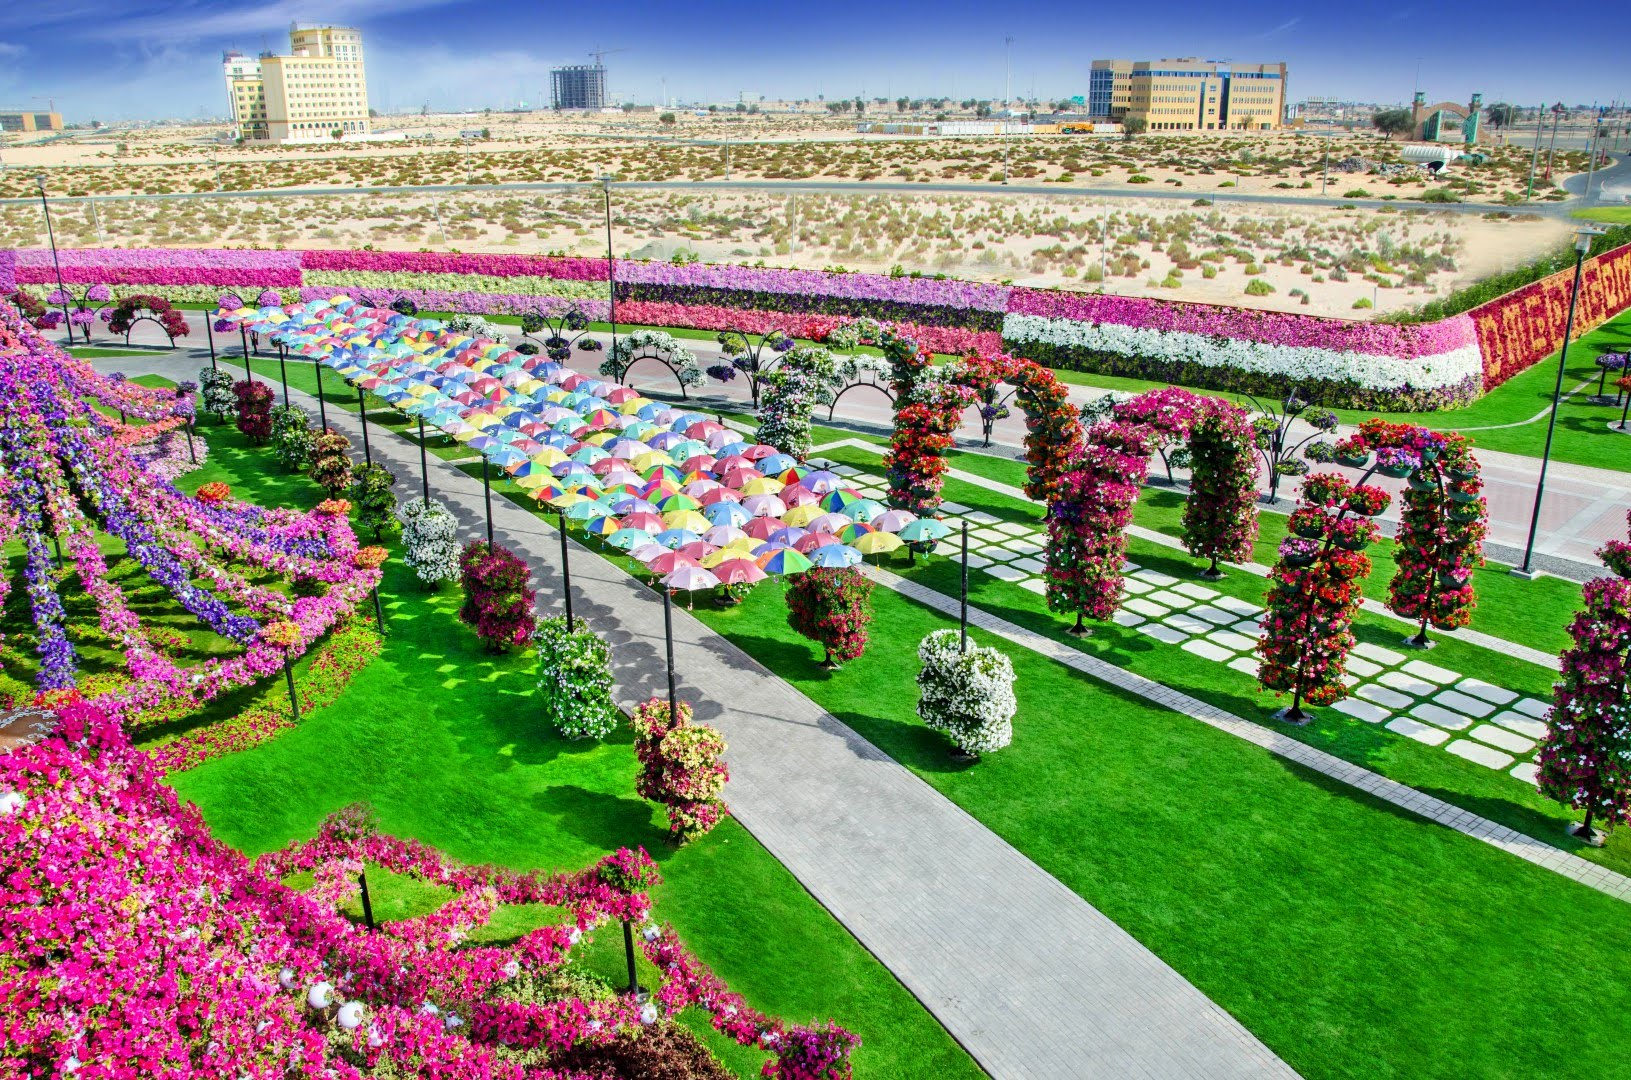 Dubai Miracle Garden Dubai, miracle garden in dubai is home to 45 million flowers | miracle ...